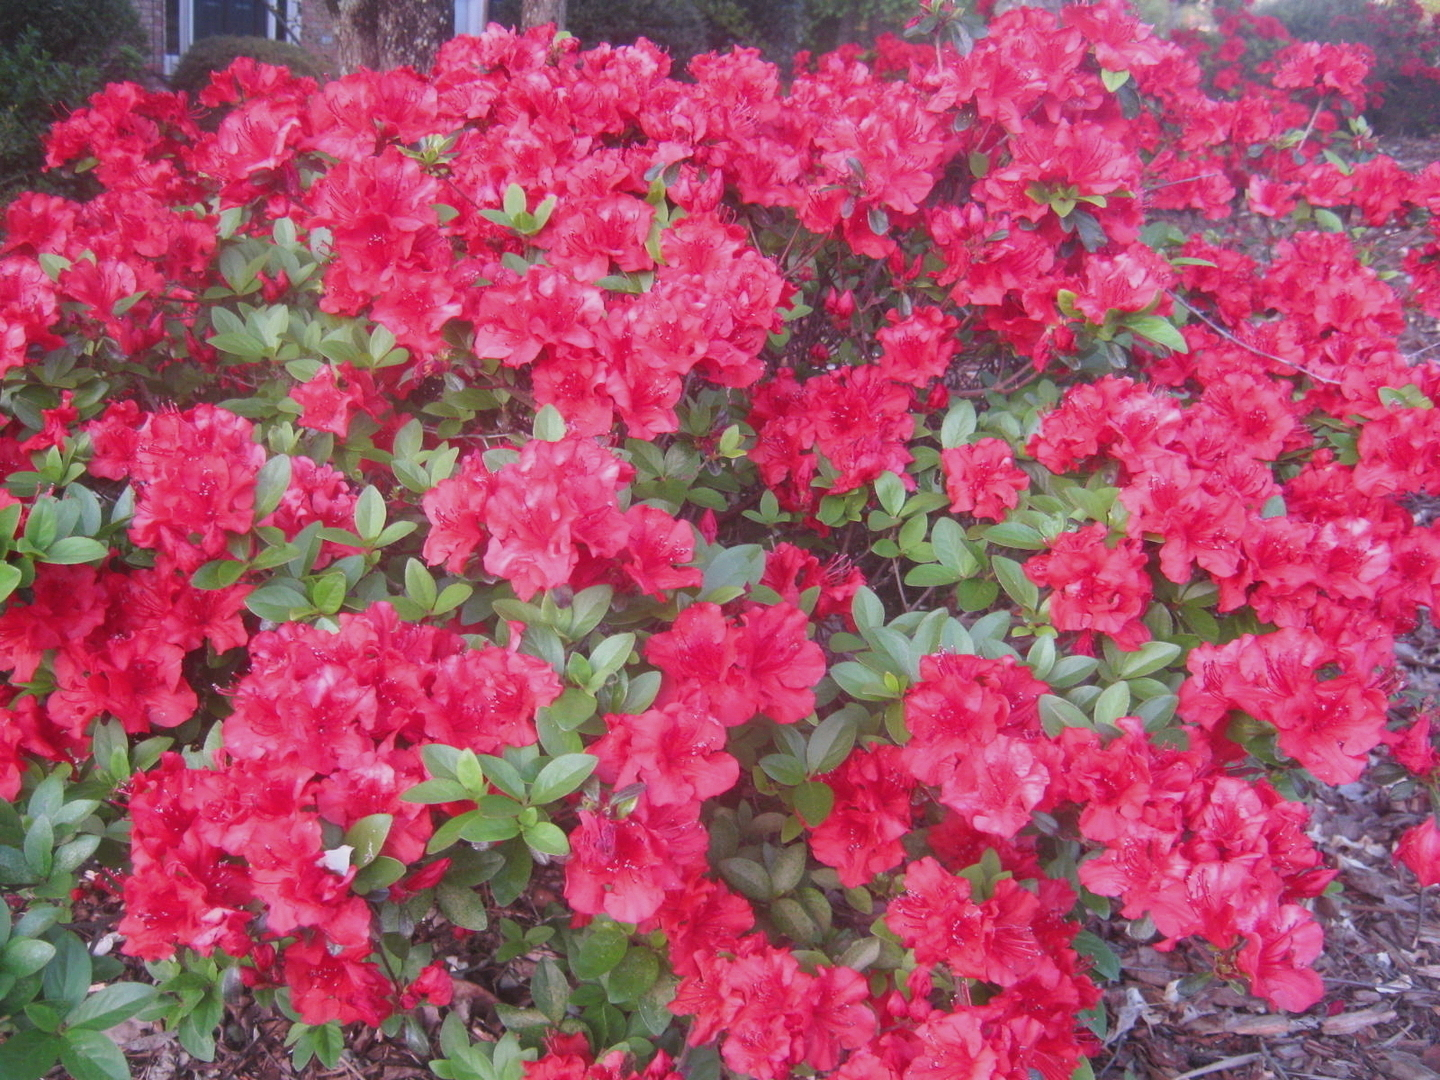 'Hershey's Red' Kurume hybrid azalea. Photo by Steve Bender.